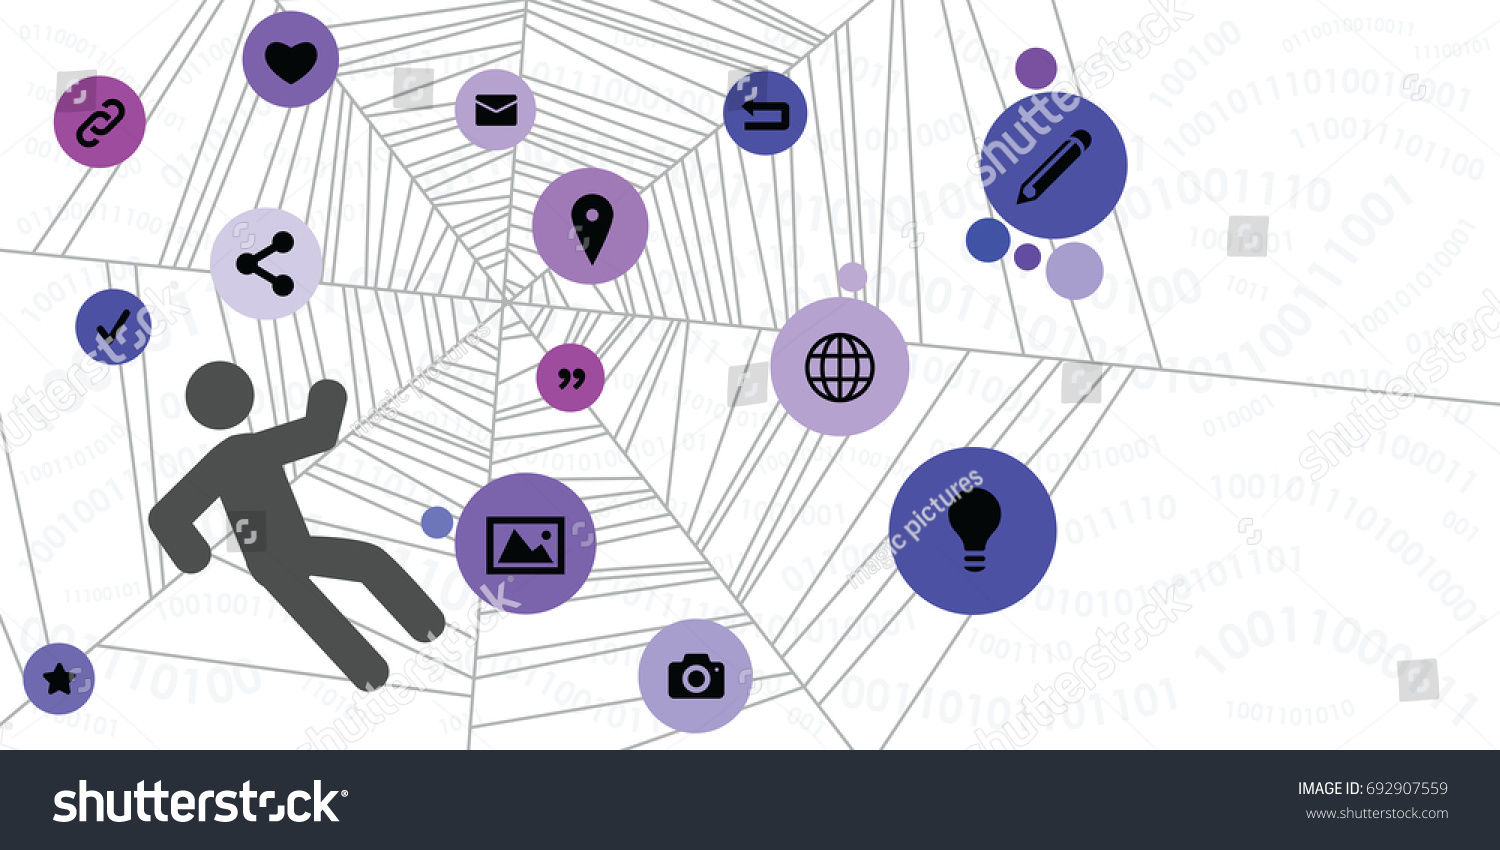 Vector Illustration Spider Web Caught Person Stock Vector Royalty